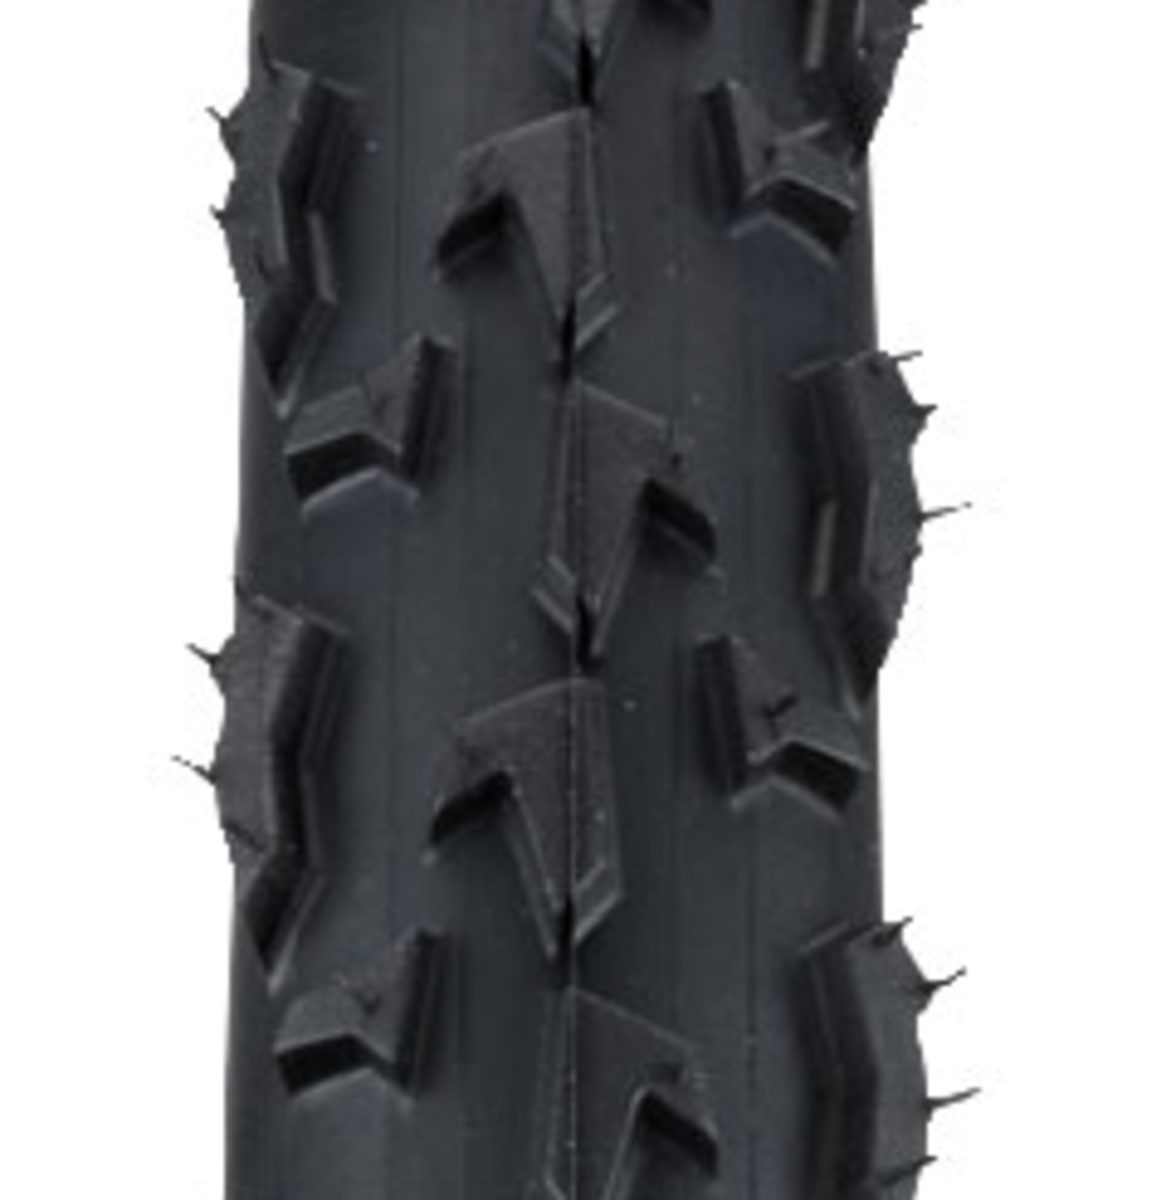 A Muddy Review of the Vittoria Cross XL Pro CX Tire